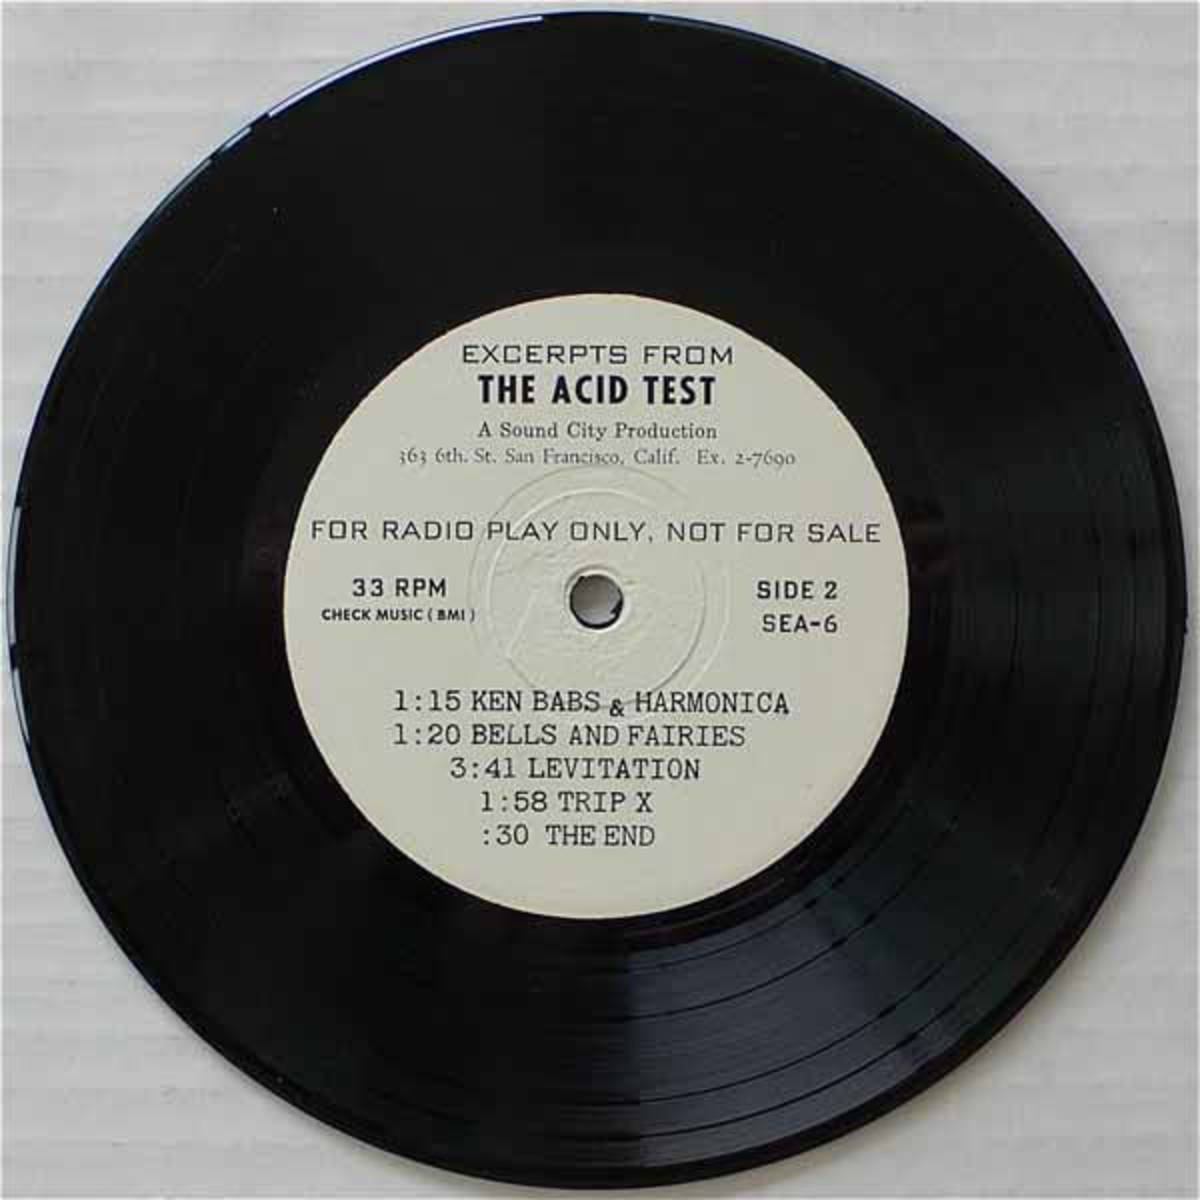 "Ken Kesey and the Merry Pranksters ""Acid Test""  Sound City Productions SEA-5 7"" EP 331/3 rpm (1966) White Label Promotional Record Side B"